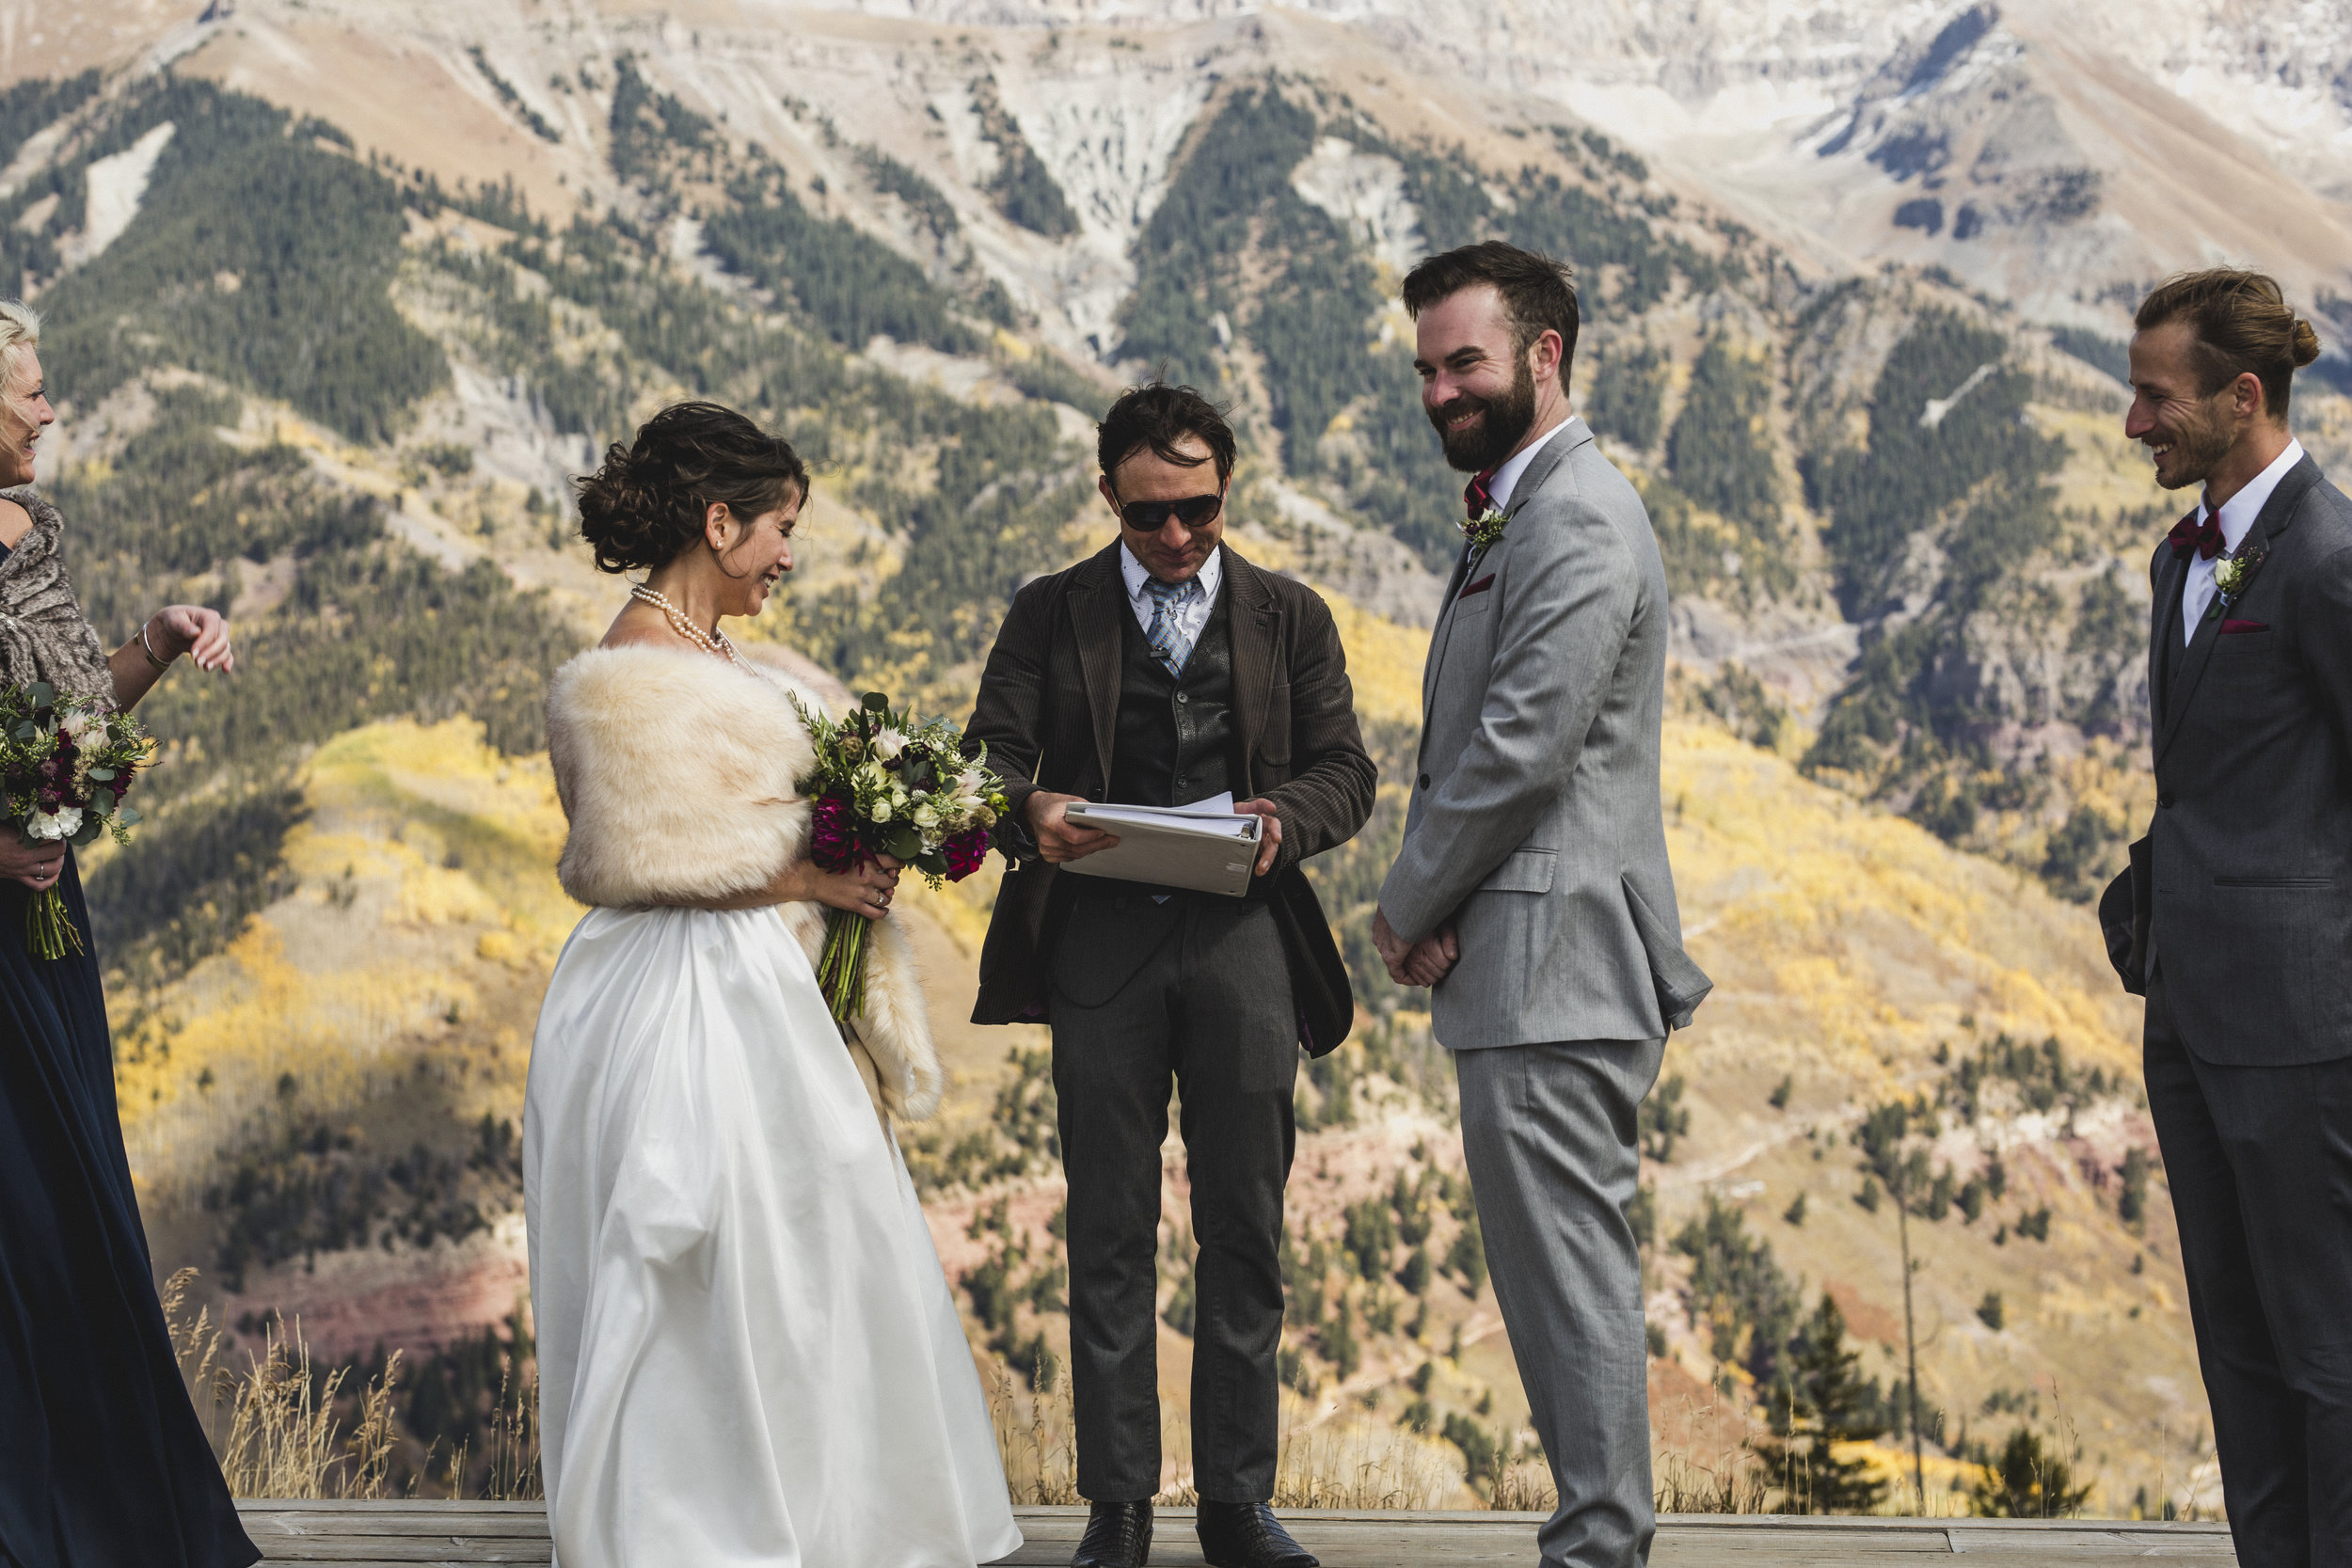 NE-LeahandAshtonphotography-Telluride-Wedding-Photography-9341.jpg